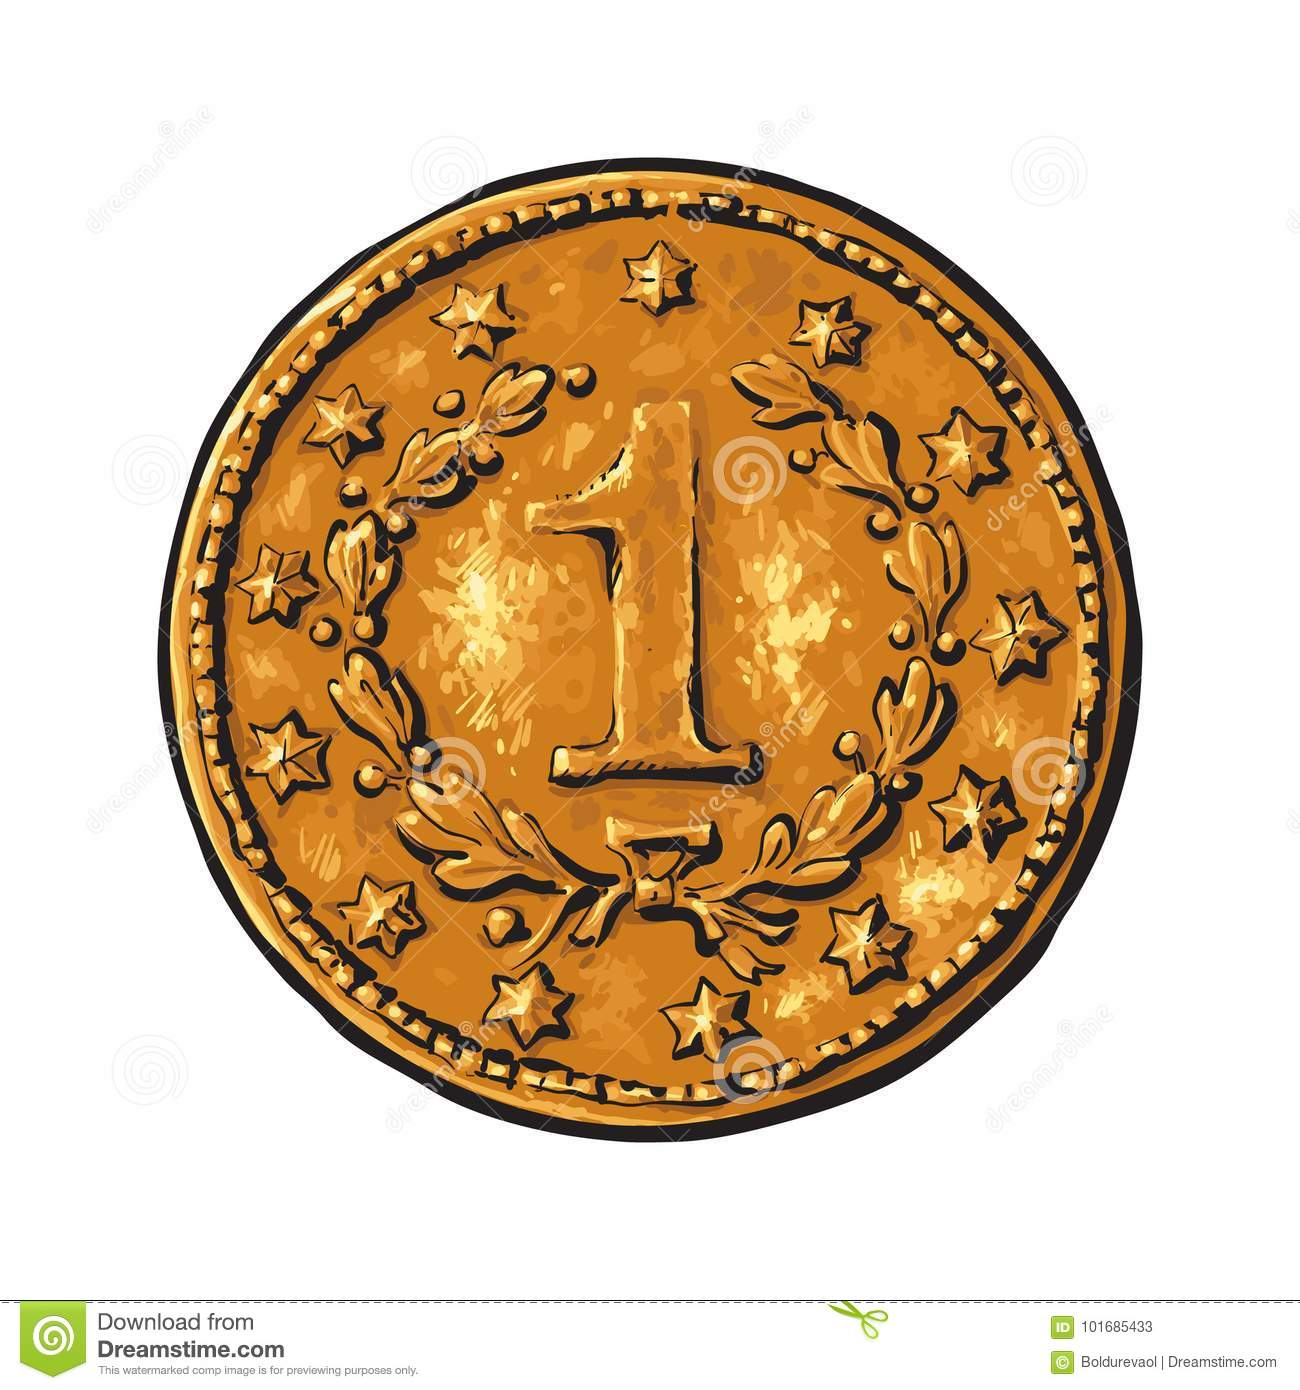 Old gold coin